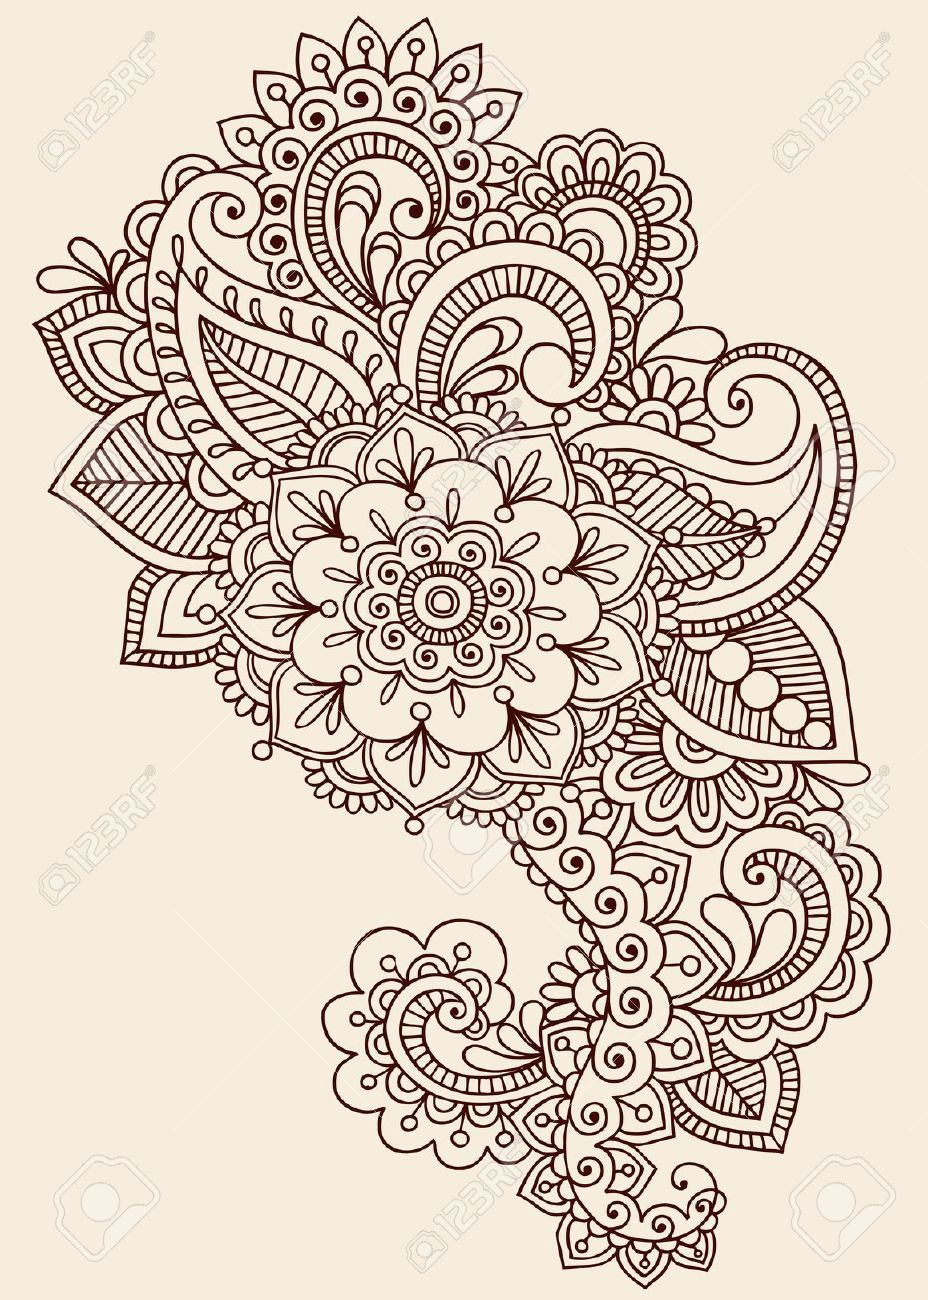 henna paisley flowers mehndi tattoo doodles design abstract royalty free cliparts vectors. Black Bedroom Furniture Sets. Home Design Ideas